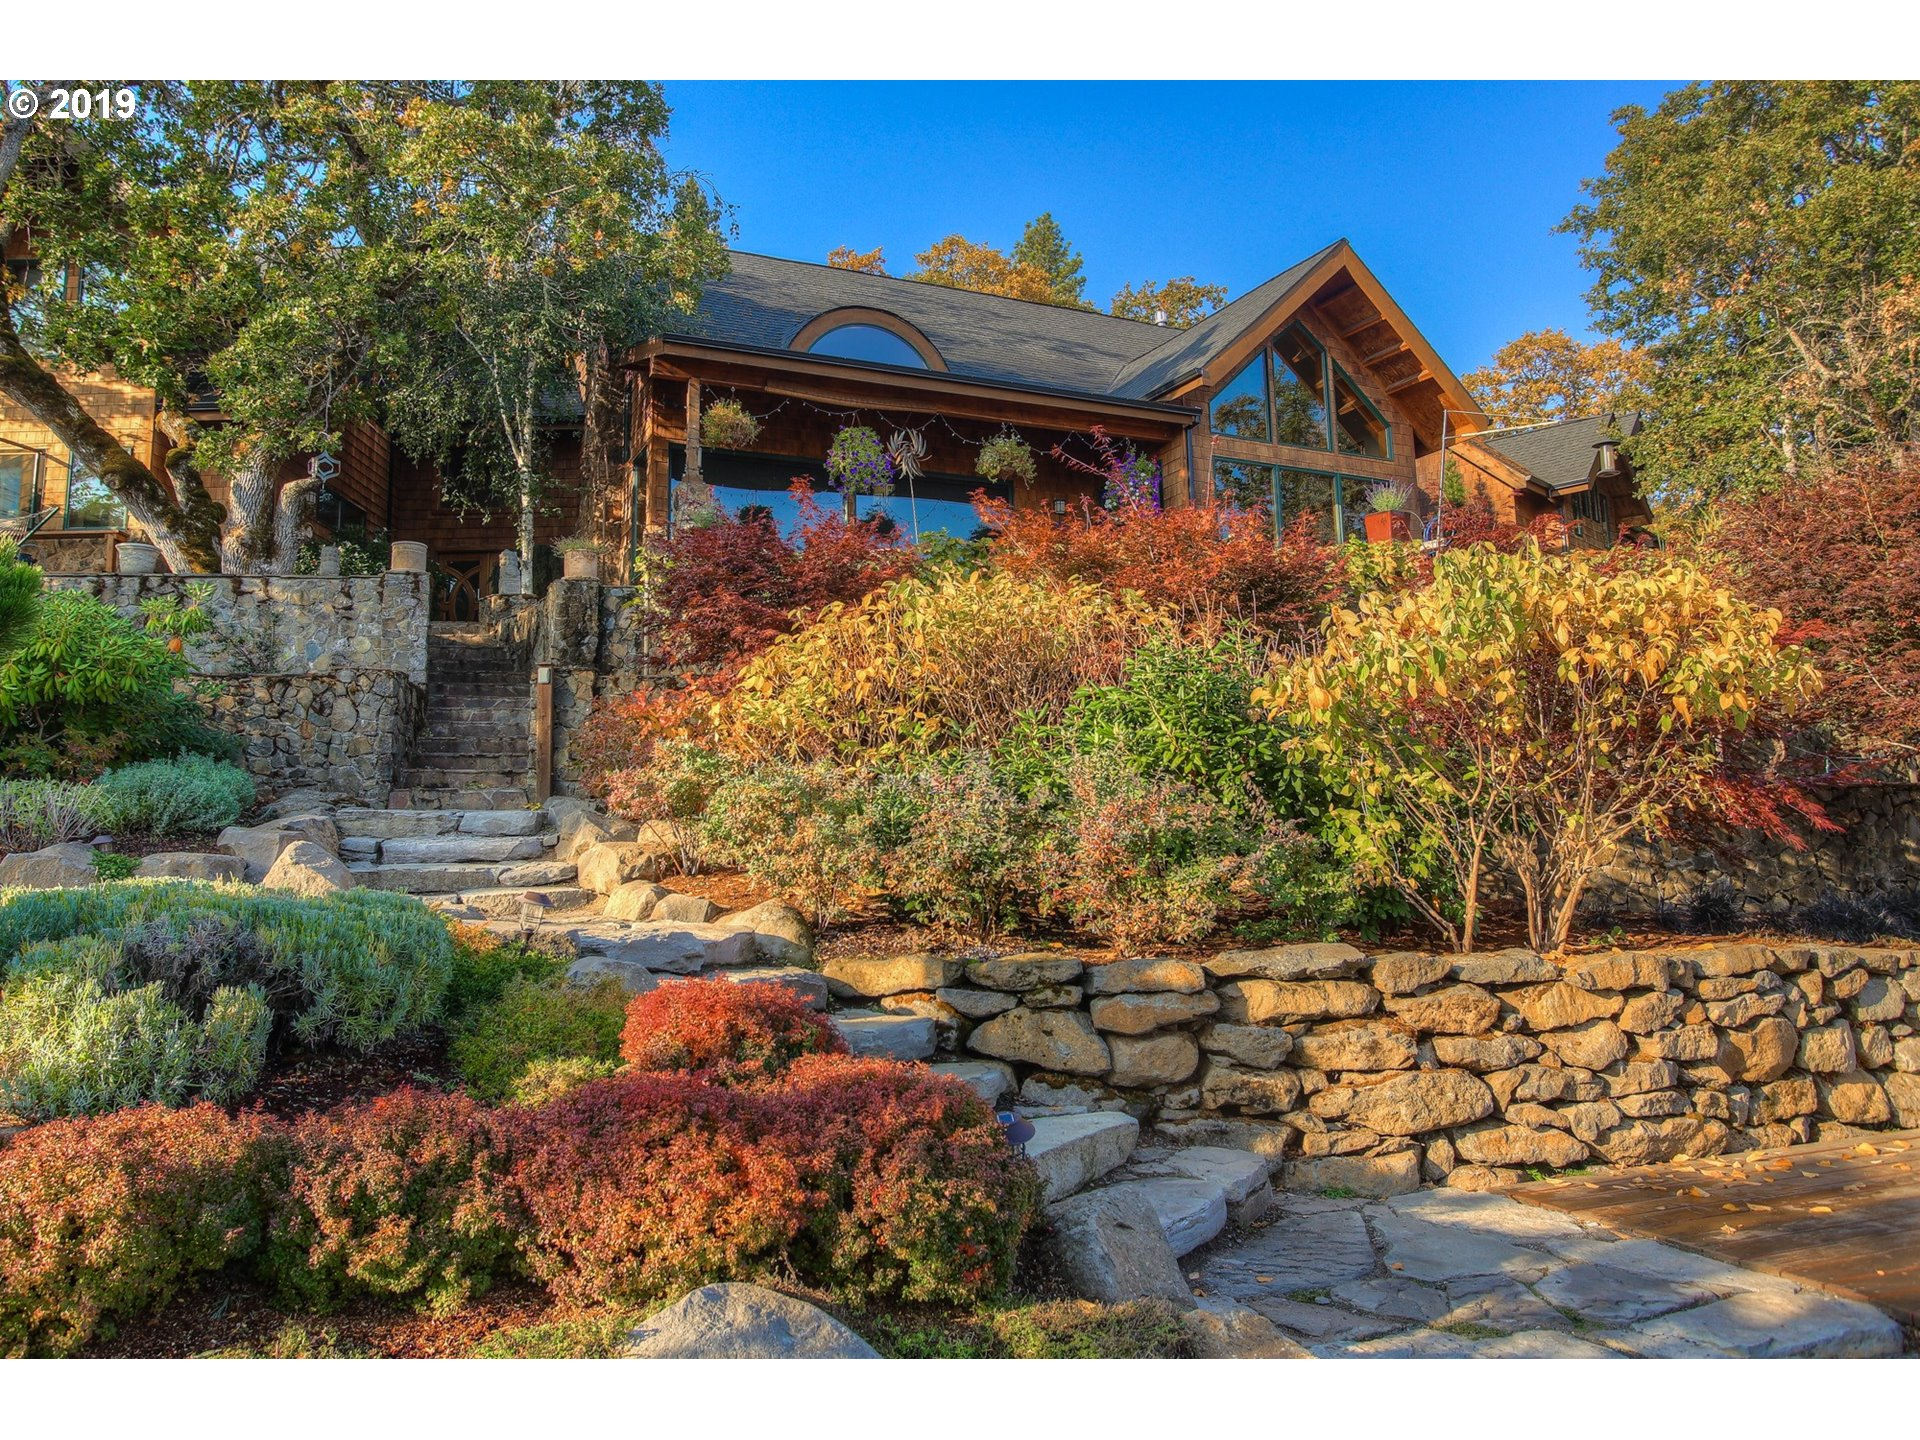 Peachy Mosier Oregon Homes For Sale Home Interior And Landscaping Oversignezvosmurscom